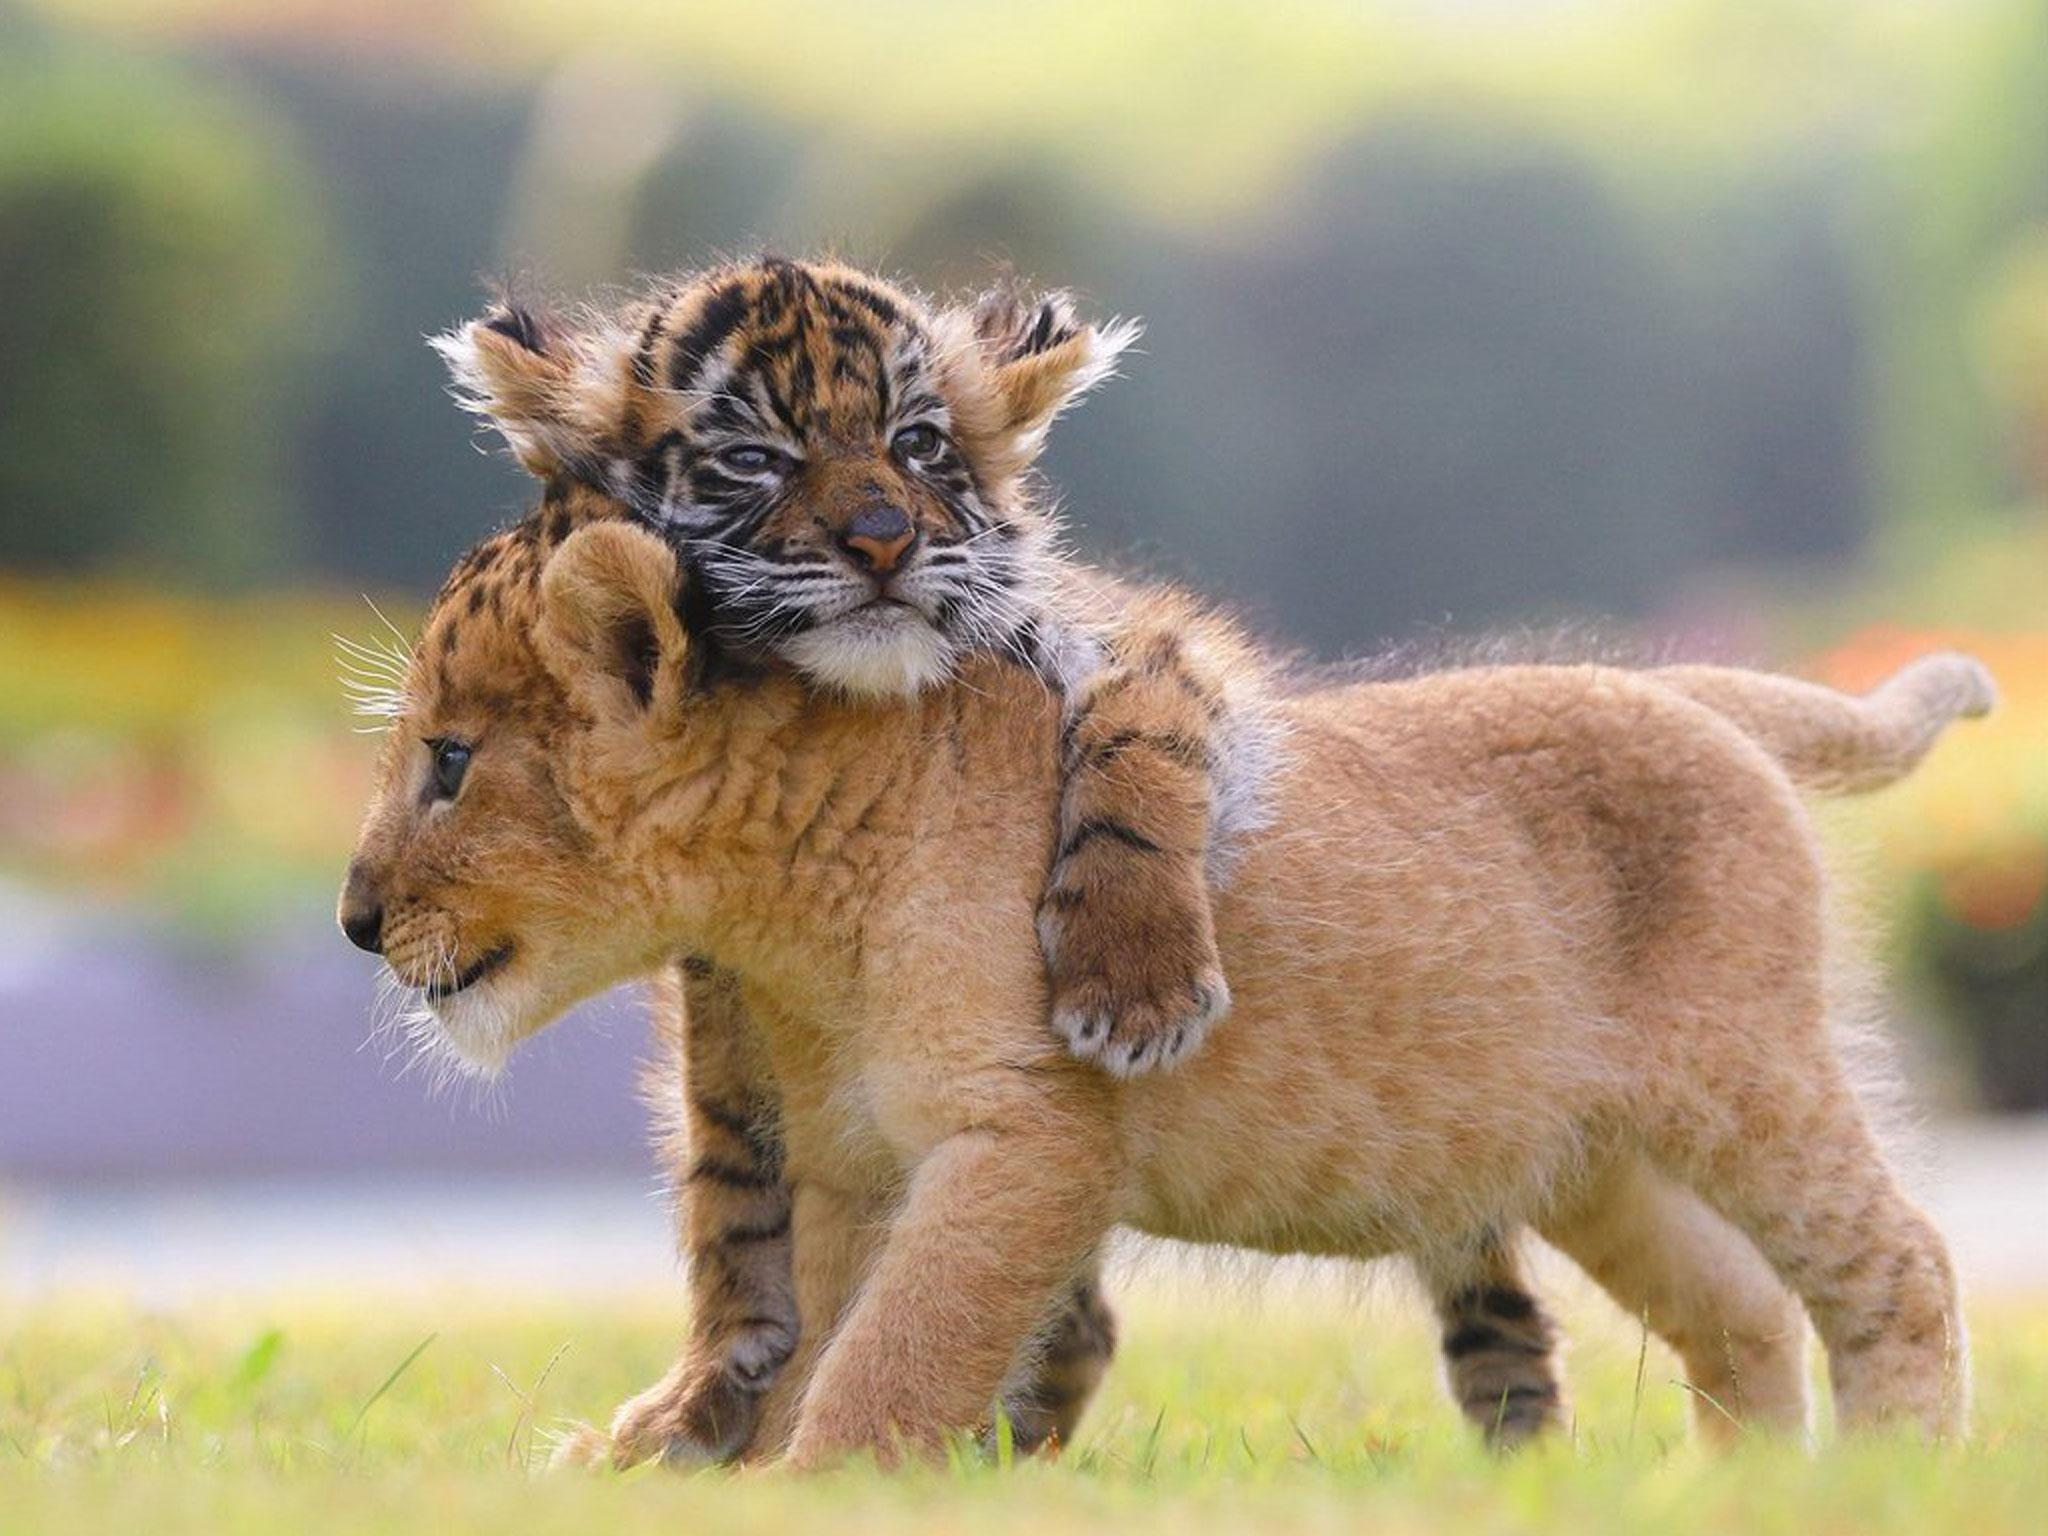 Cute lion and tiger cubs appear to be best friends in adorable ...